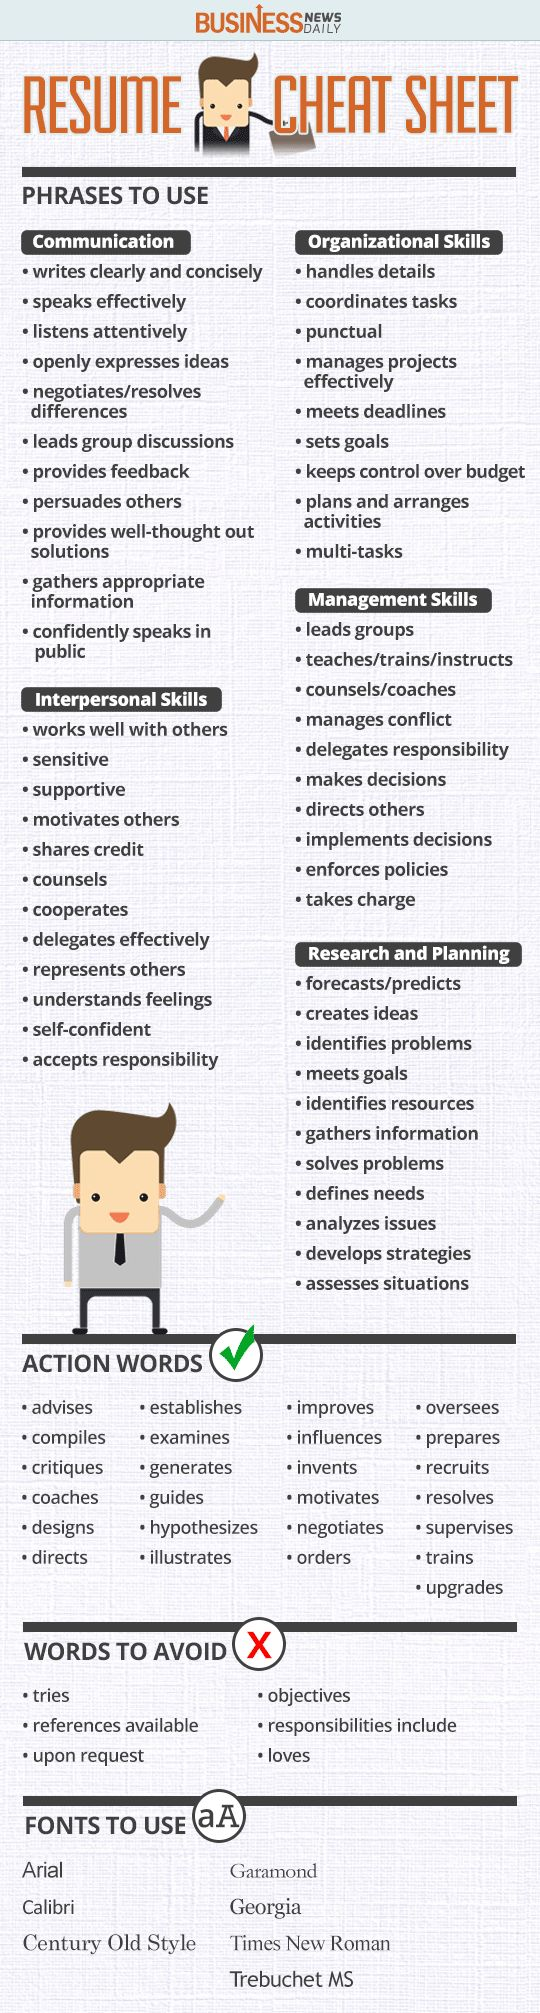 Opposenewapstandardsus  Winning  Ideas About Resume On Pinterest  Cv Format Resume Cv And  With Engaging Resume Cheat Sheet Infographic Andrews Almost Done With A Complete Unit On Employment Which With Enchanting Financial Analyst Sample Resume Also Online Resume Template Free In Addition Family Nurse Practitioner Resume And Information Technology Resumes As Well As Post College Resume Additionally Things To Add To Resume From Pinterestcom With Opposenewapstandardsus  Engaging  Ideas About Resume On Pinterest  Cv Format Resume Cv And  With Enchanting Resume Cheat Sheet Infographic Andrews Almost Done With A Complete Unit On Employment Which And Winning Financial Analyst Sample Resume Also Online Resume Template Free In Addition Family Nurse Practitioner Resume From Pinterestcom